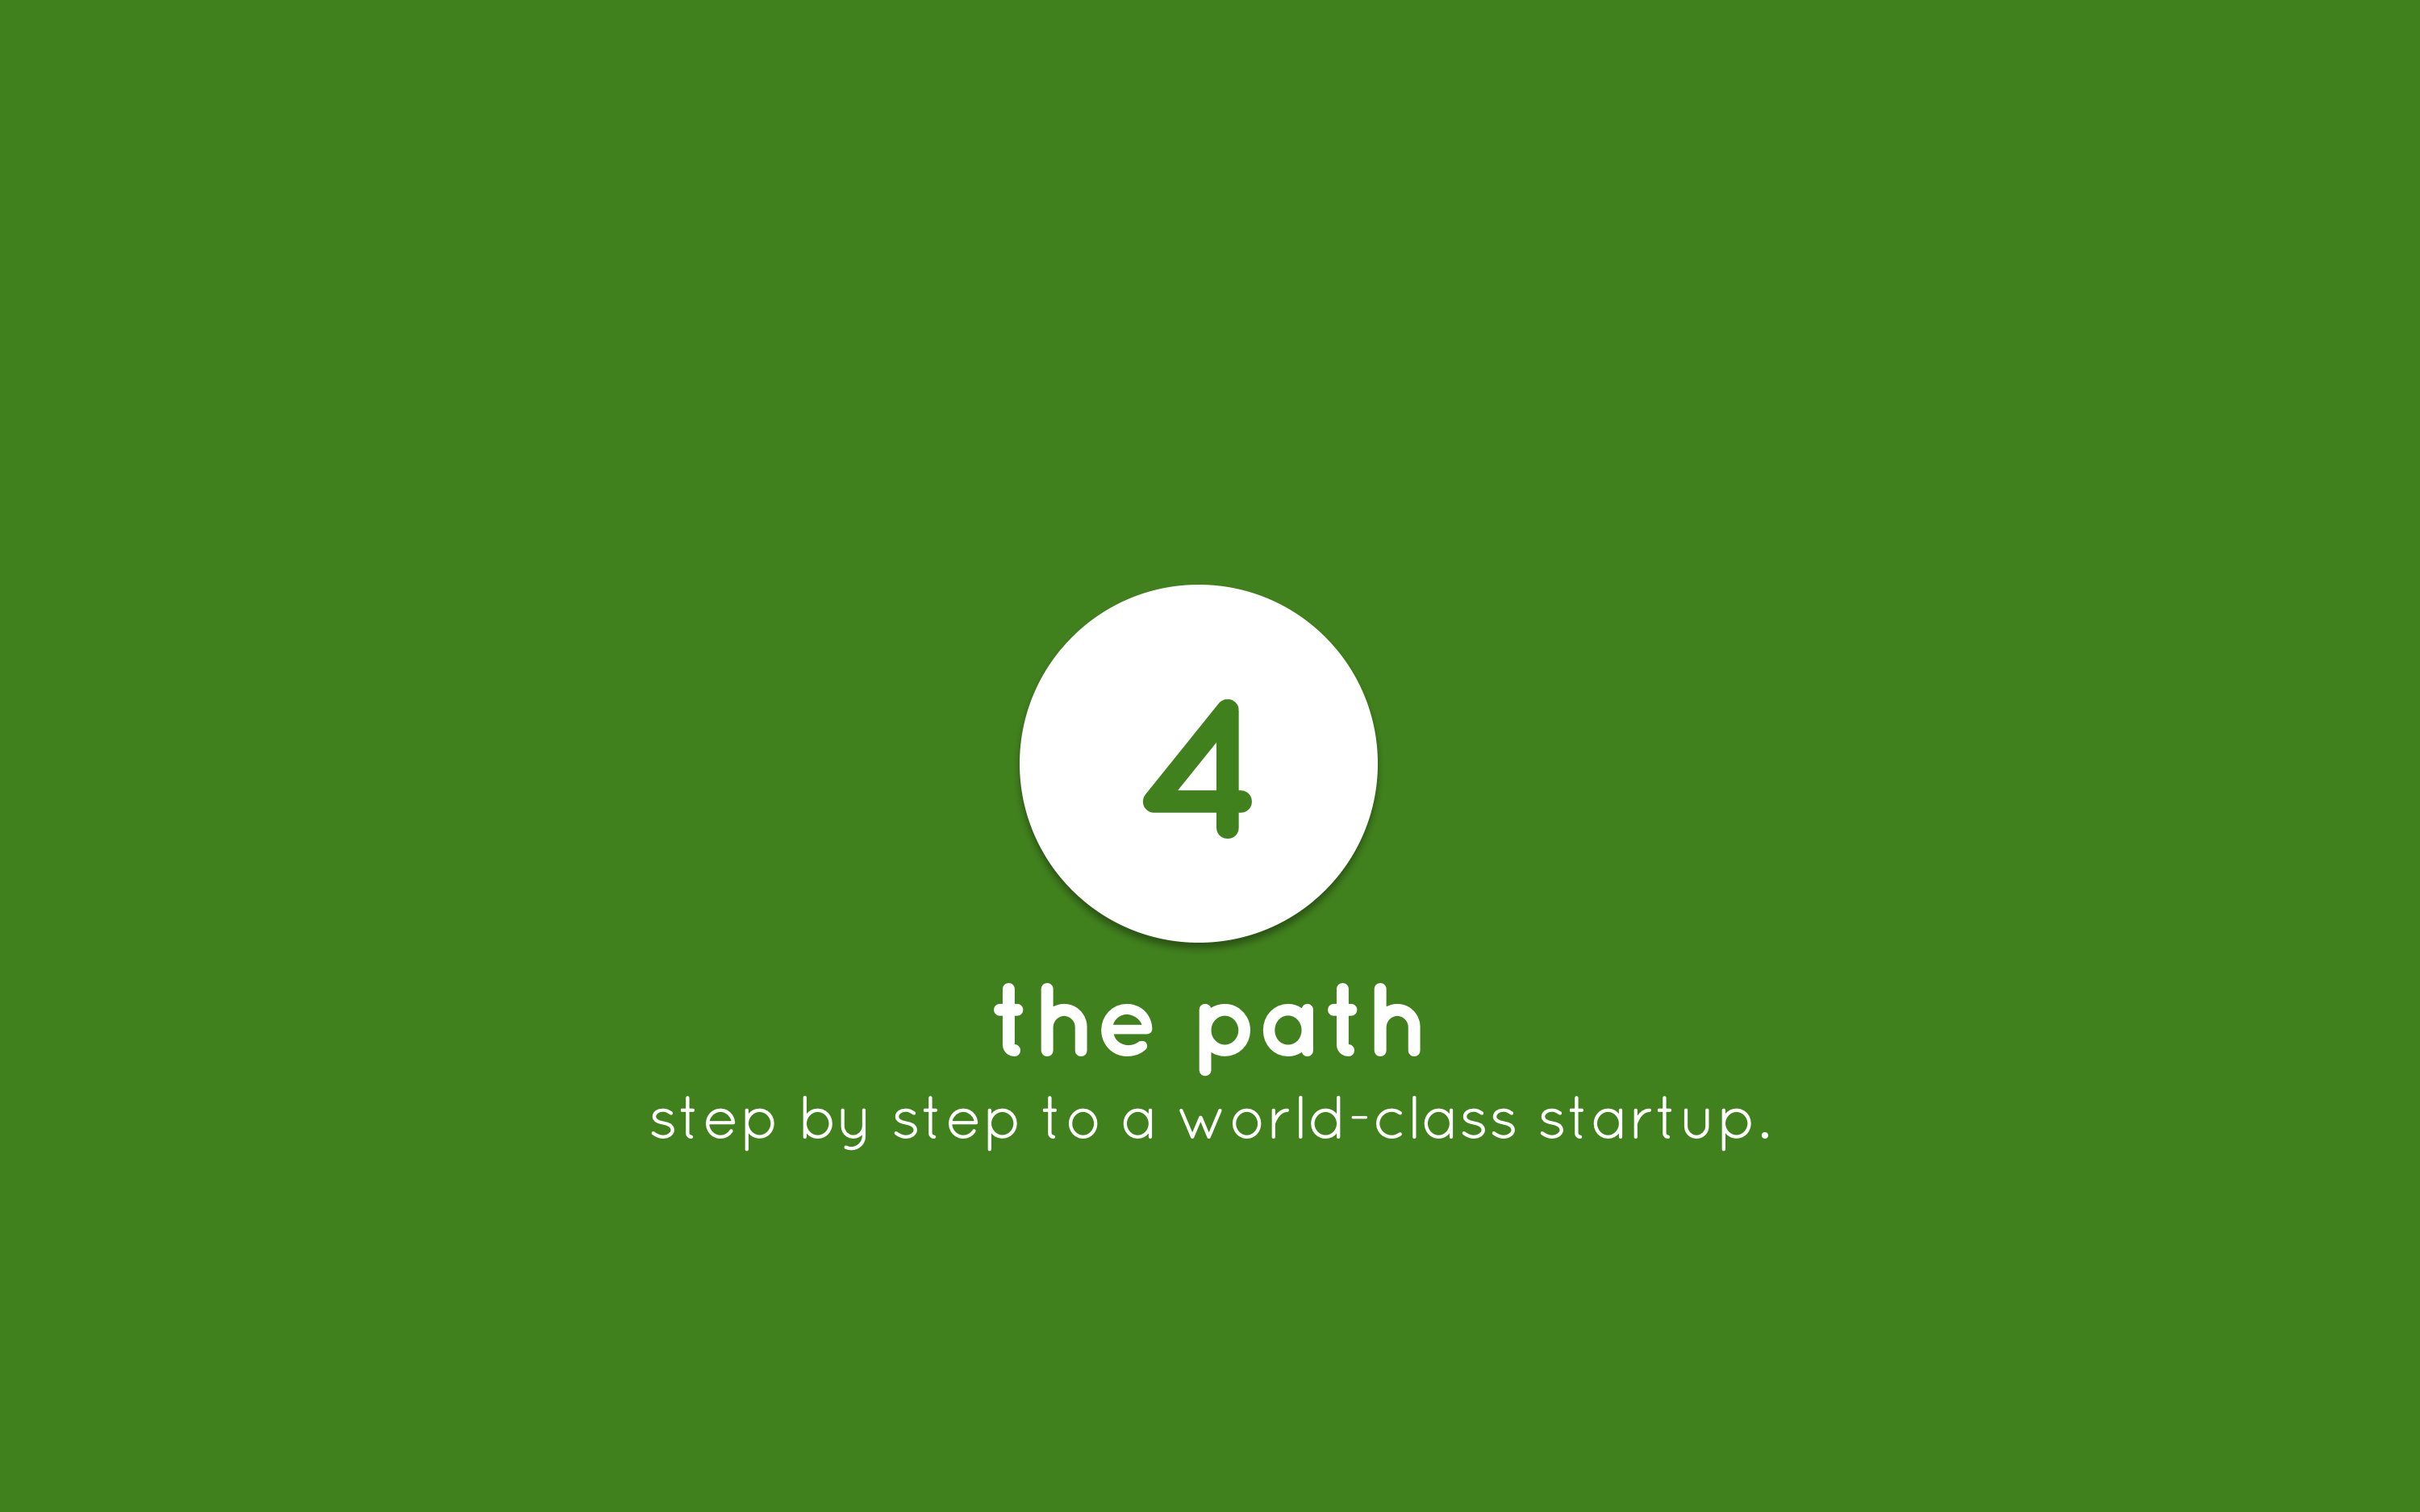 Human-Centered Entrepreneurship step 4 the path